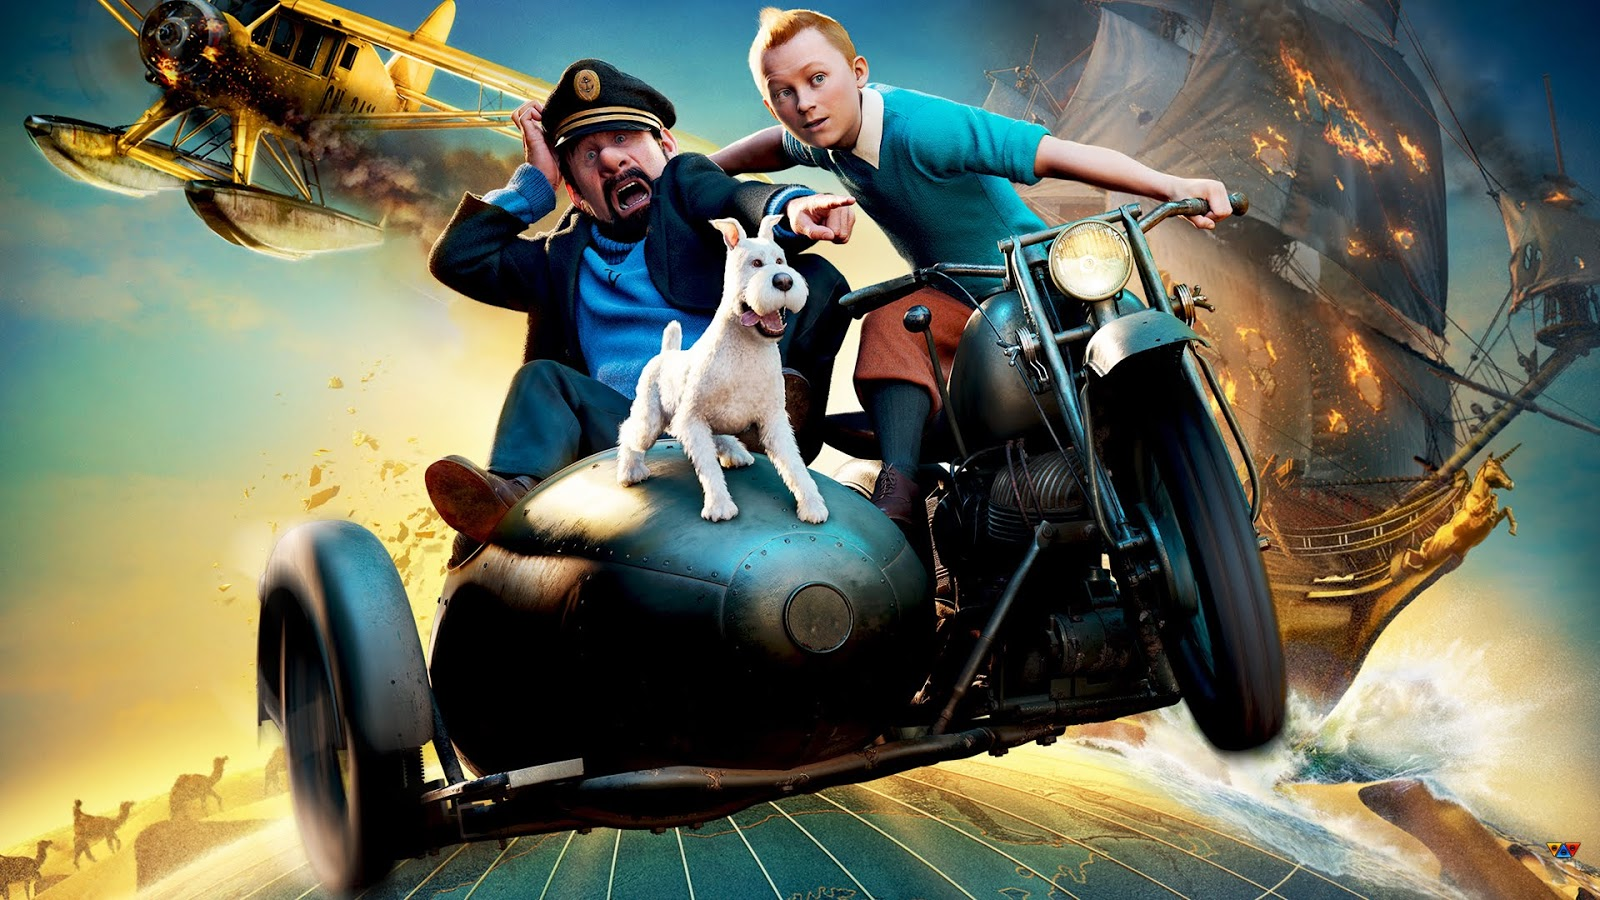 Adventure Of Tintin Movie Free Download